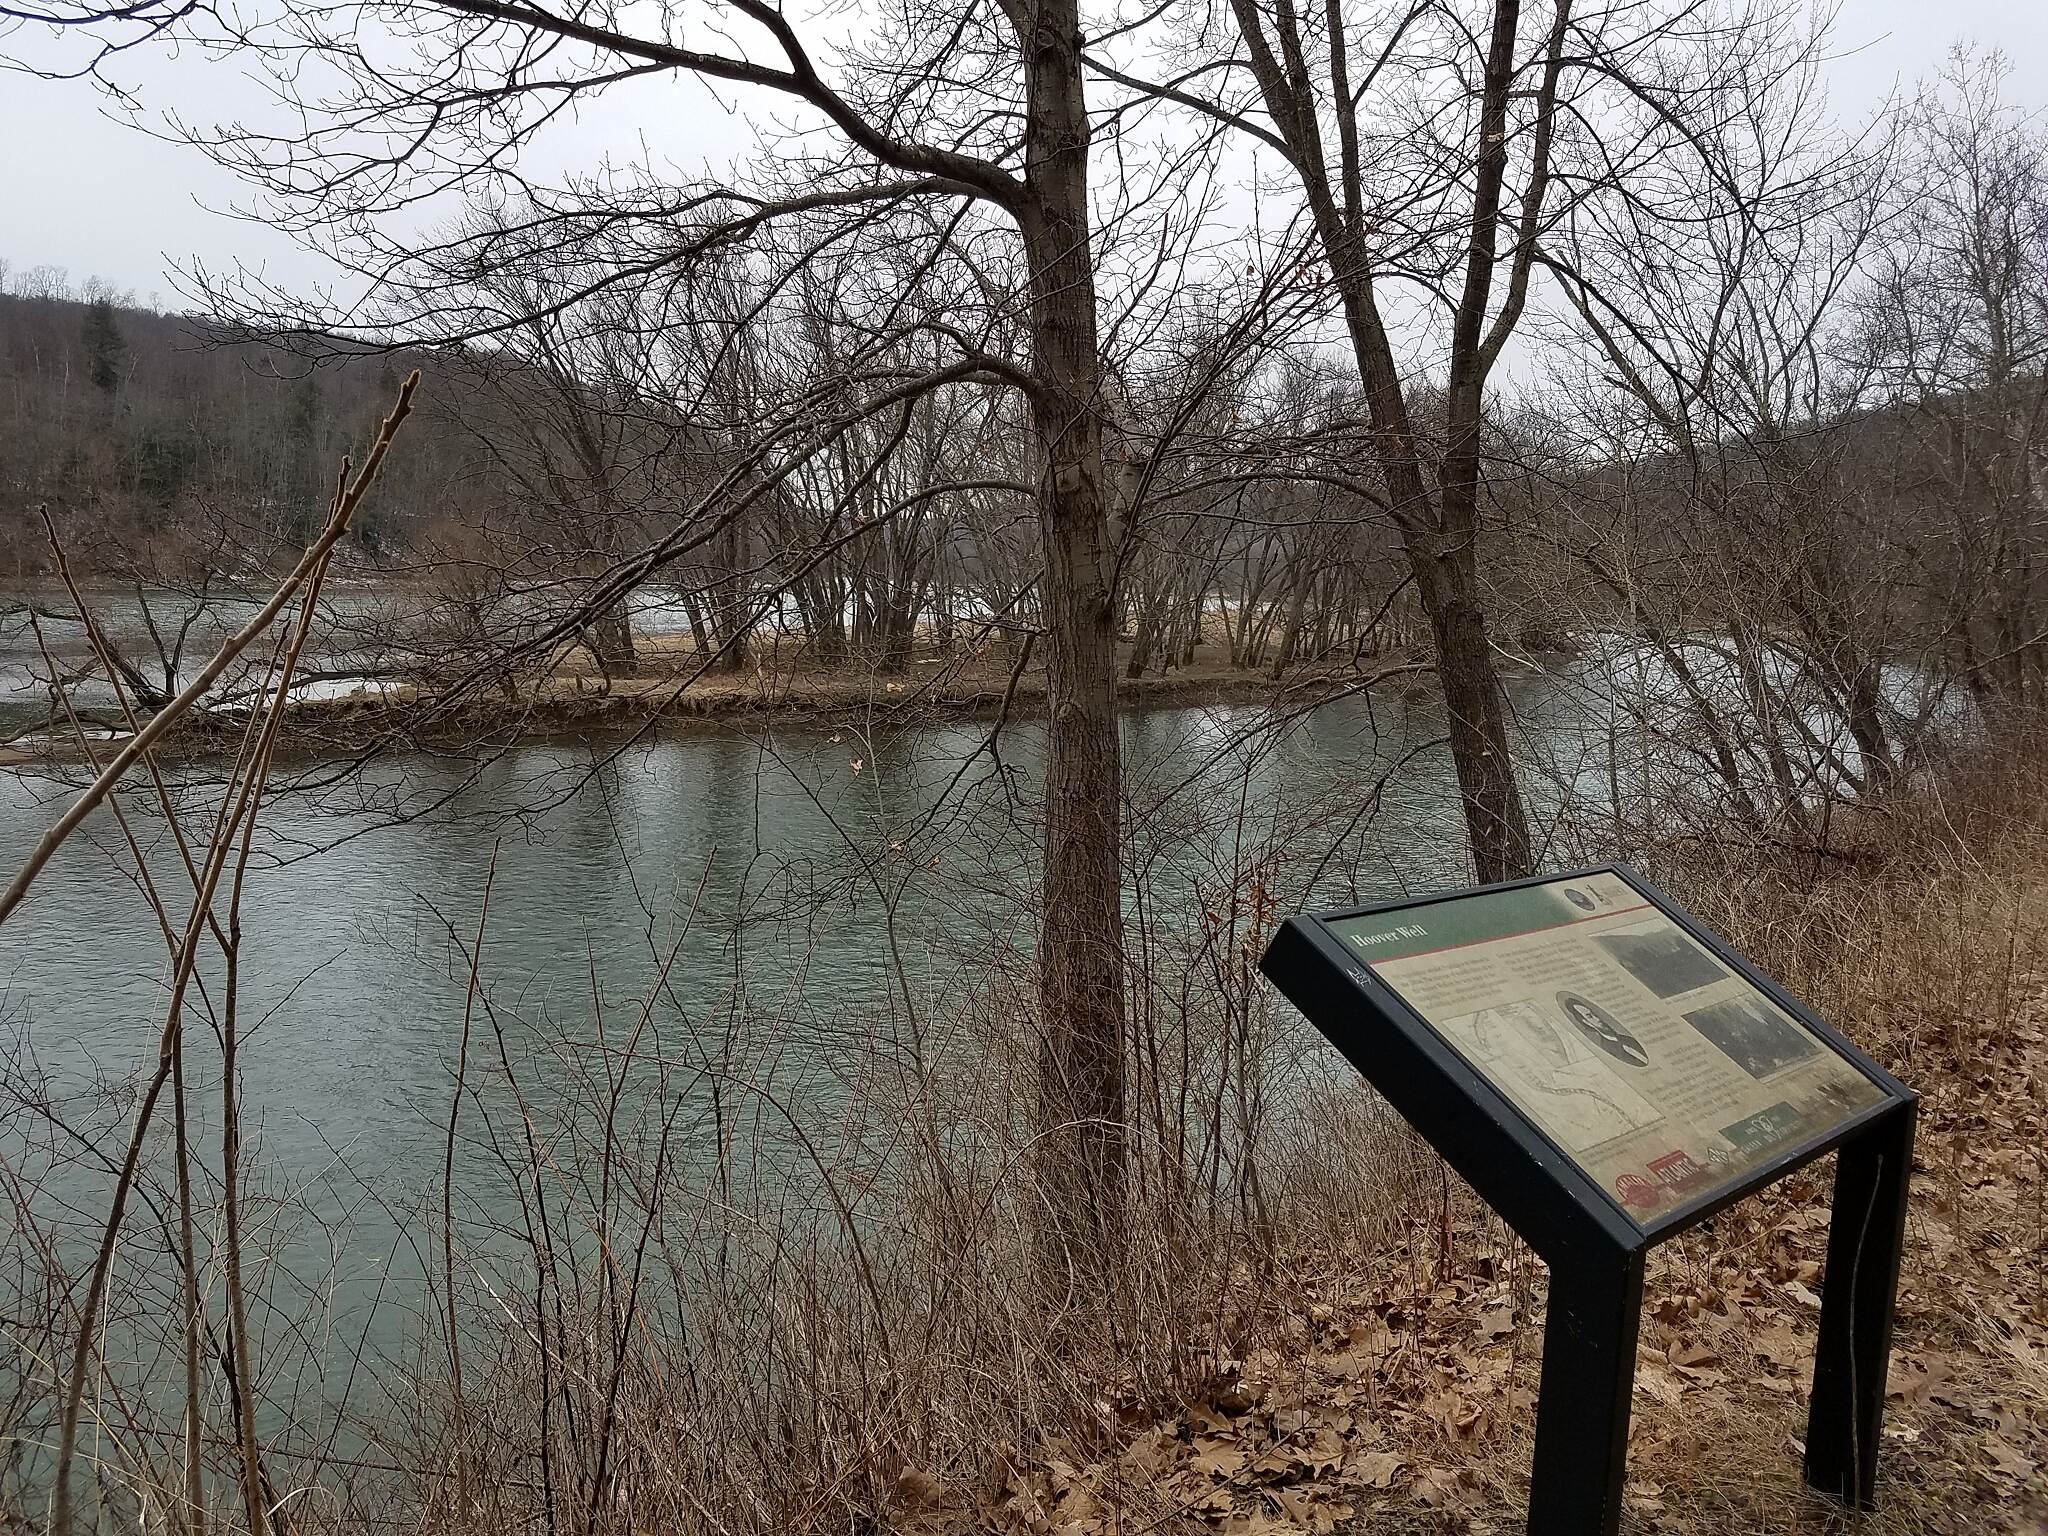 Allegheny River Trail Early Spring 2019 Early Spring 2019